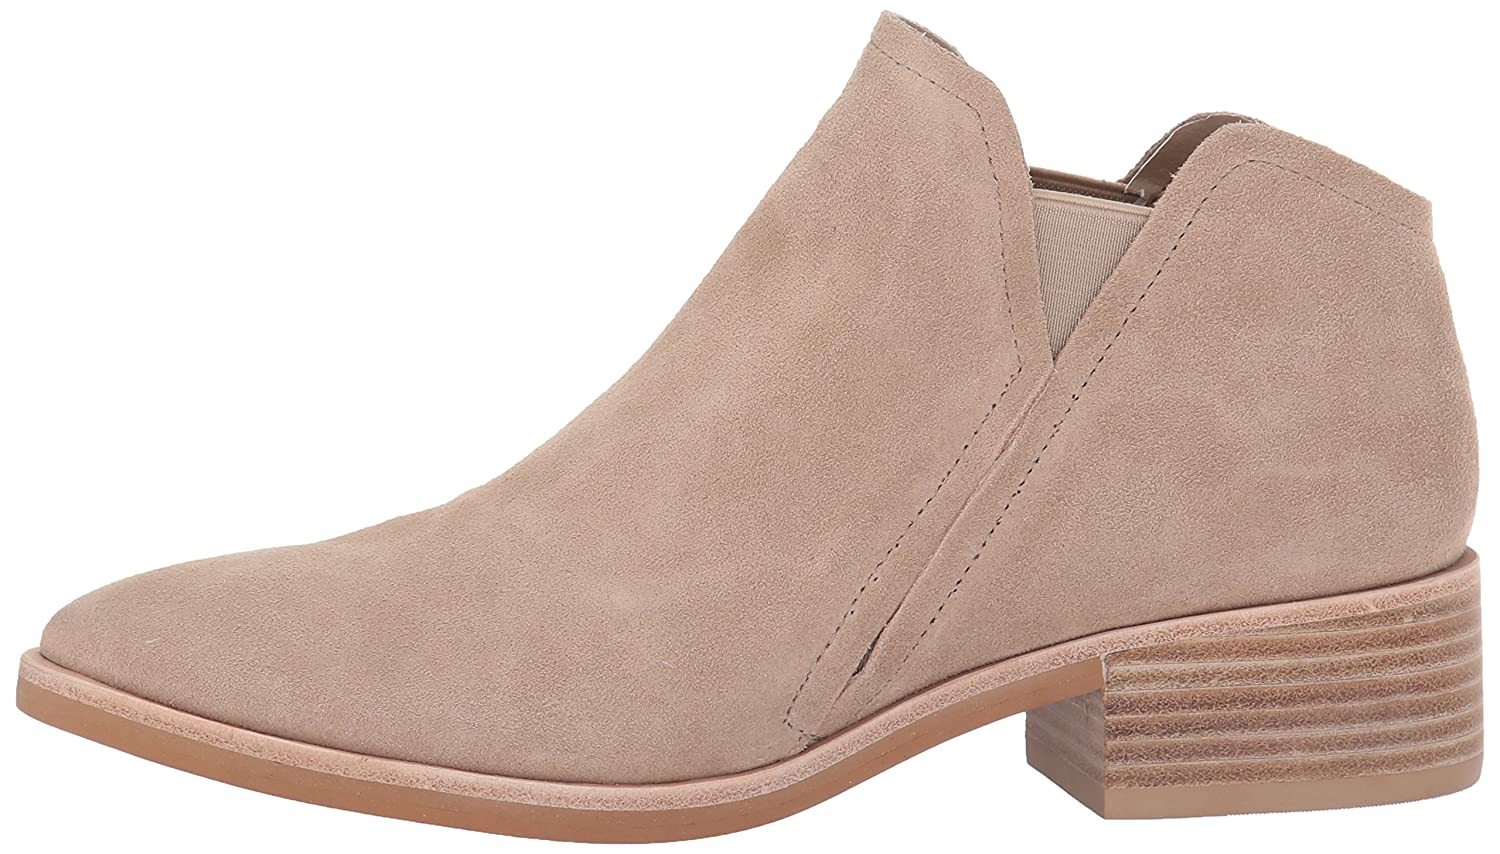 Dolce Vita Women's Tay B(M) Ankle Boot B06XGPQG2S 7 B(M) Tay US|Sand Suede af2e4e